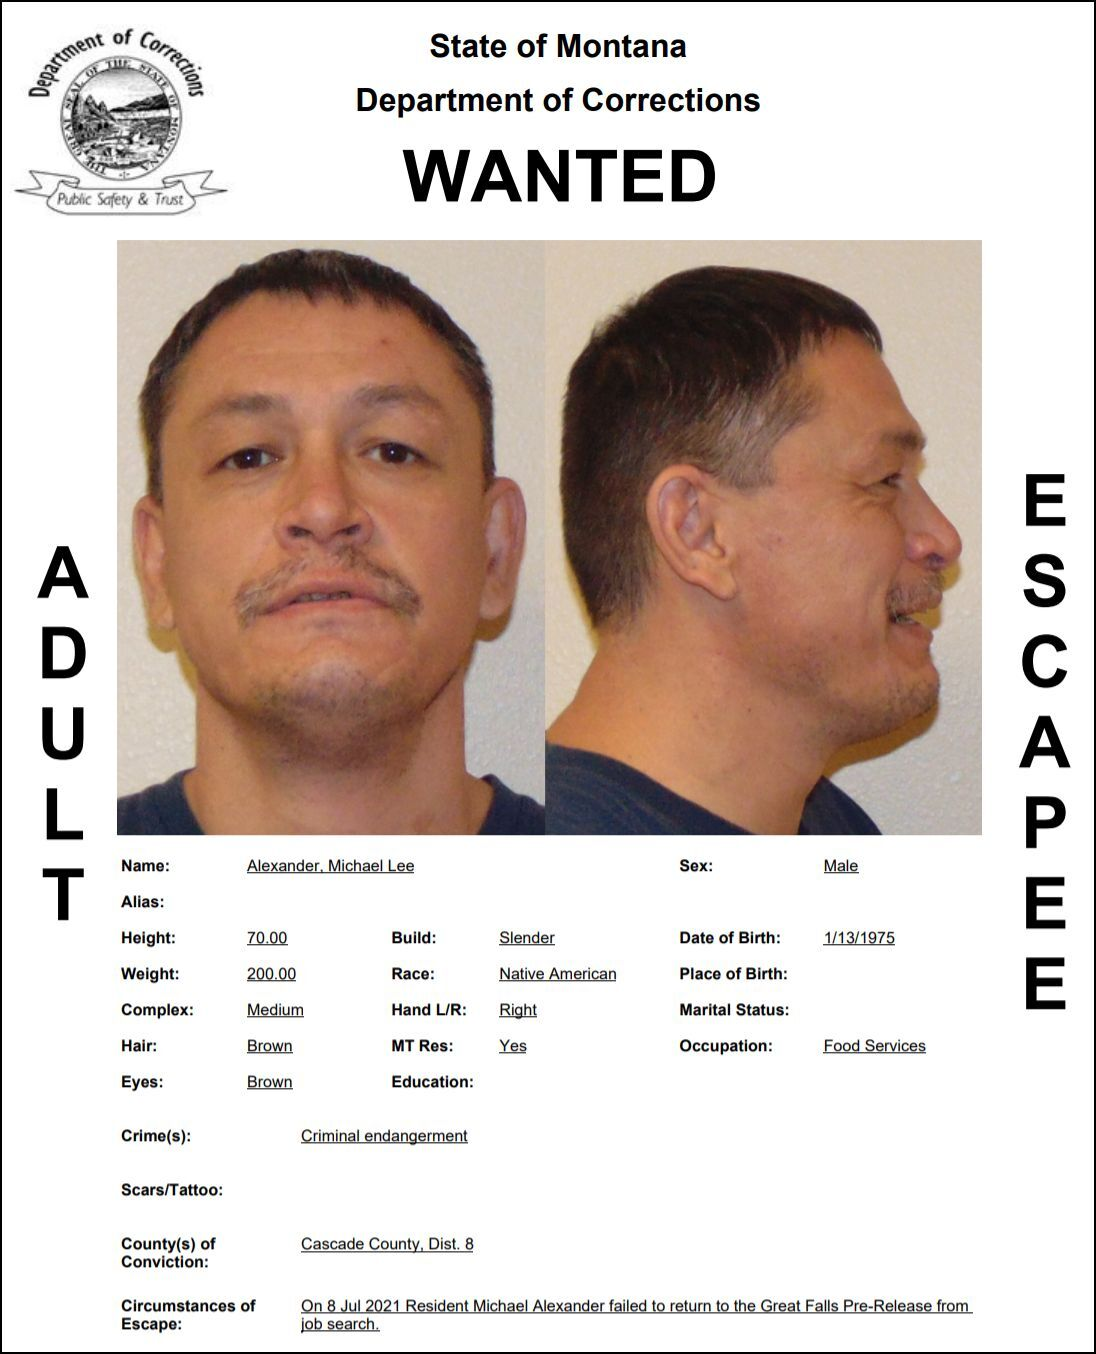 Alexander reported as escapee/walkaway from Great Falls Pre-Release Center